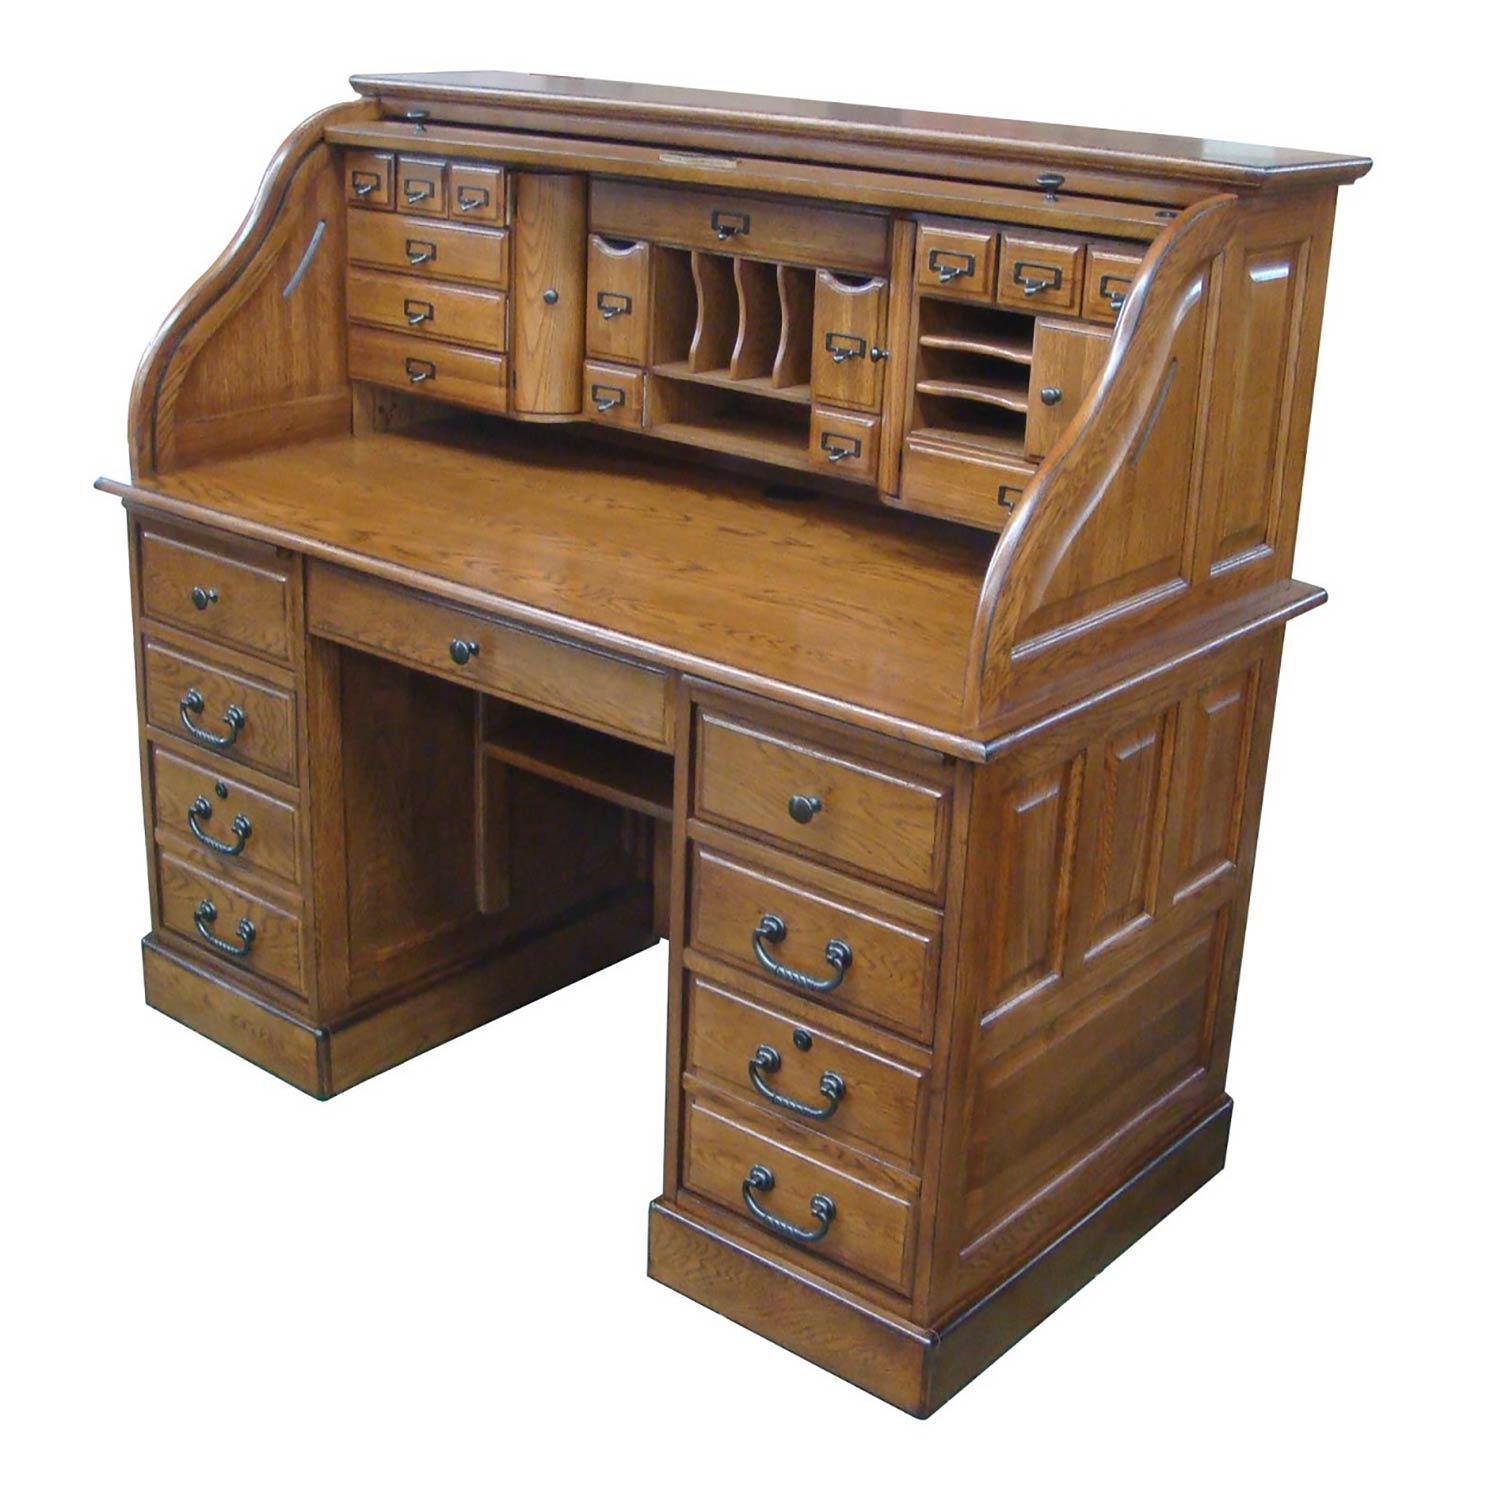 Chelsea Home Marlin 54-inch Deluxe Roll Top Desk Top - Burnished Walnut